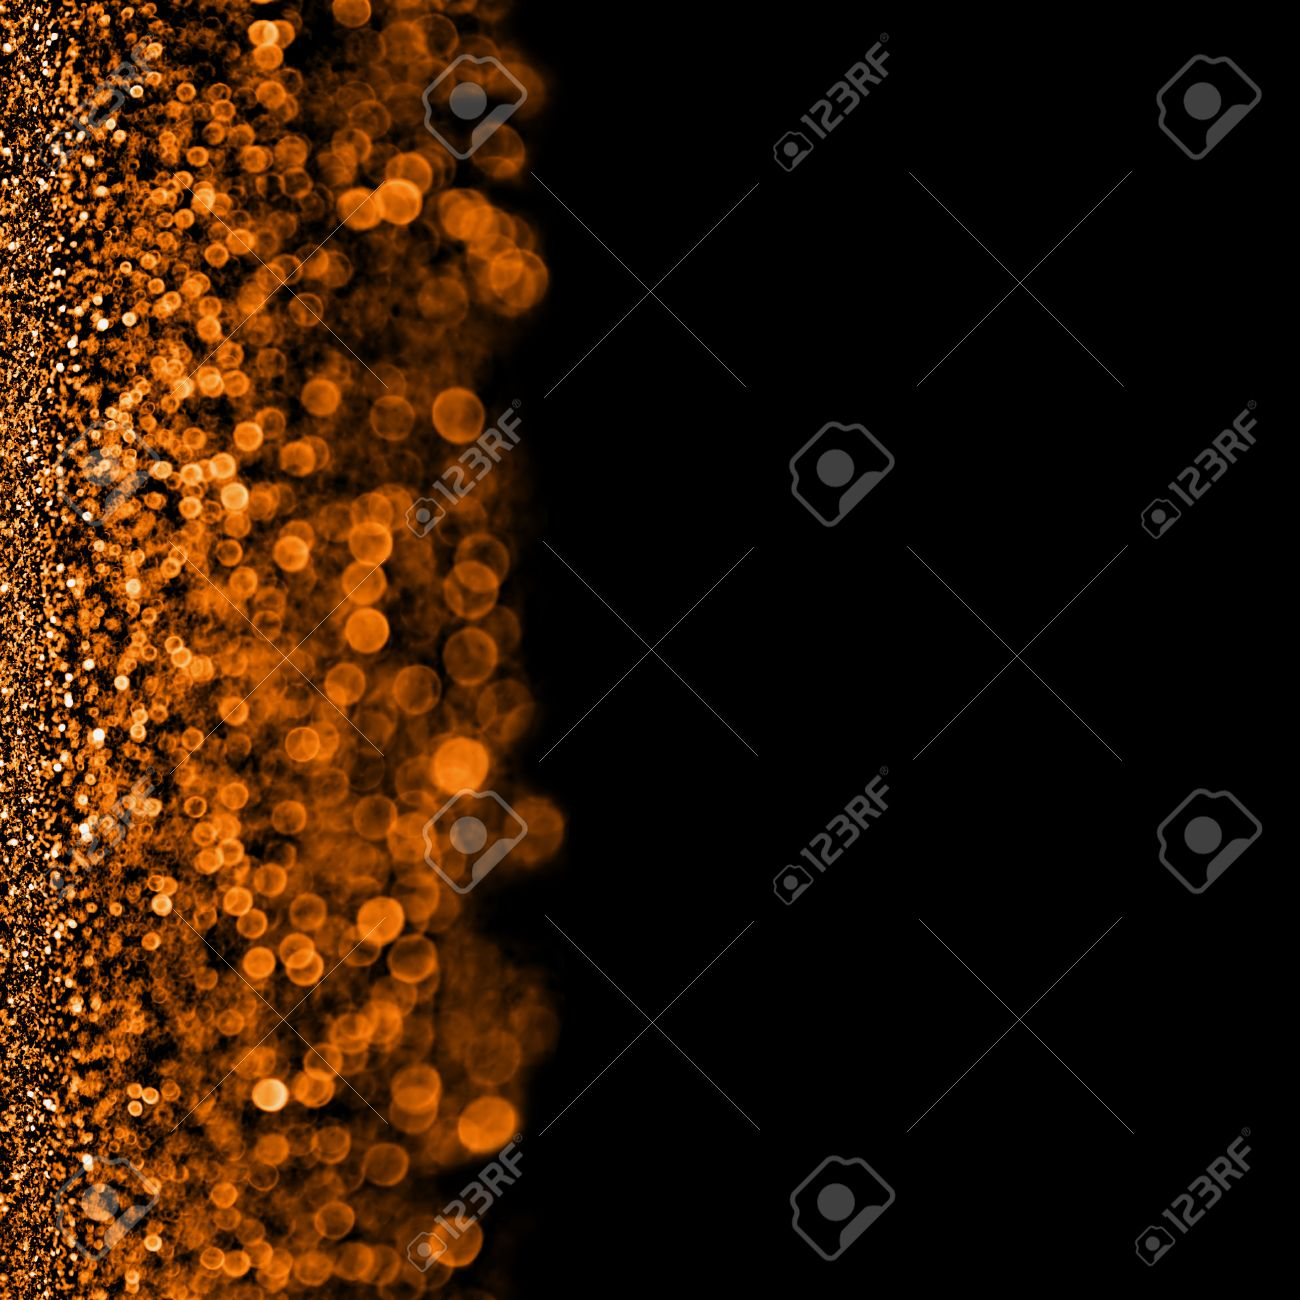 Abstract Orange Sparkle Confetti On Black Background With Copy